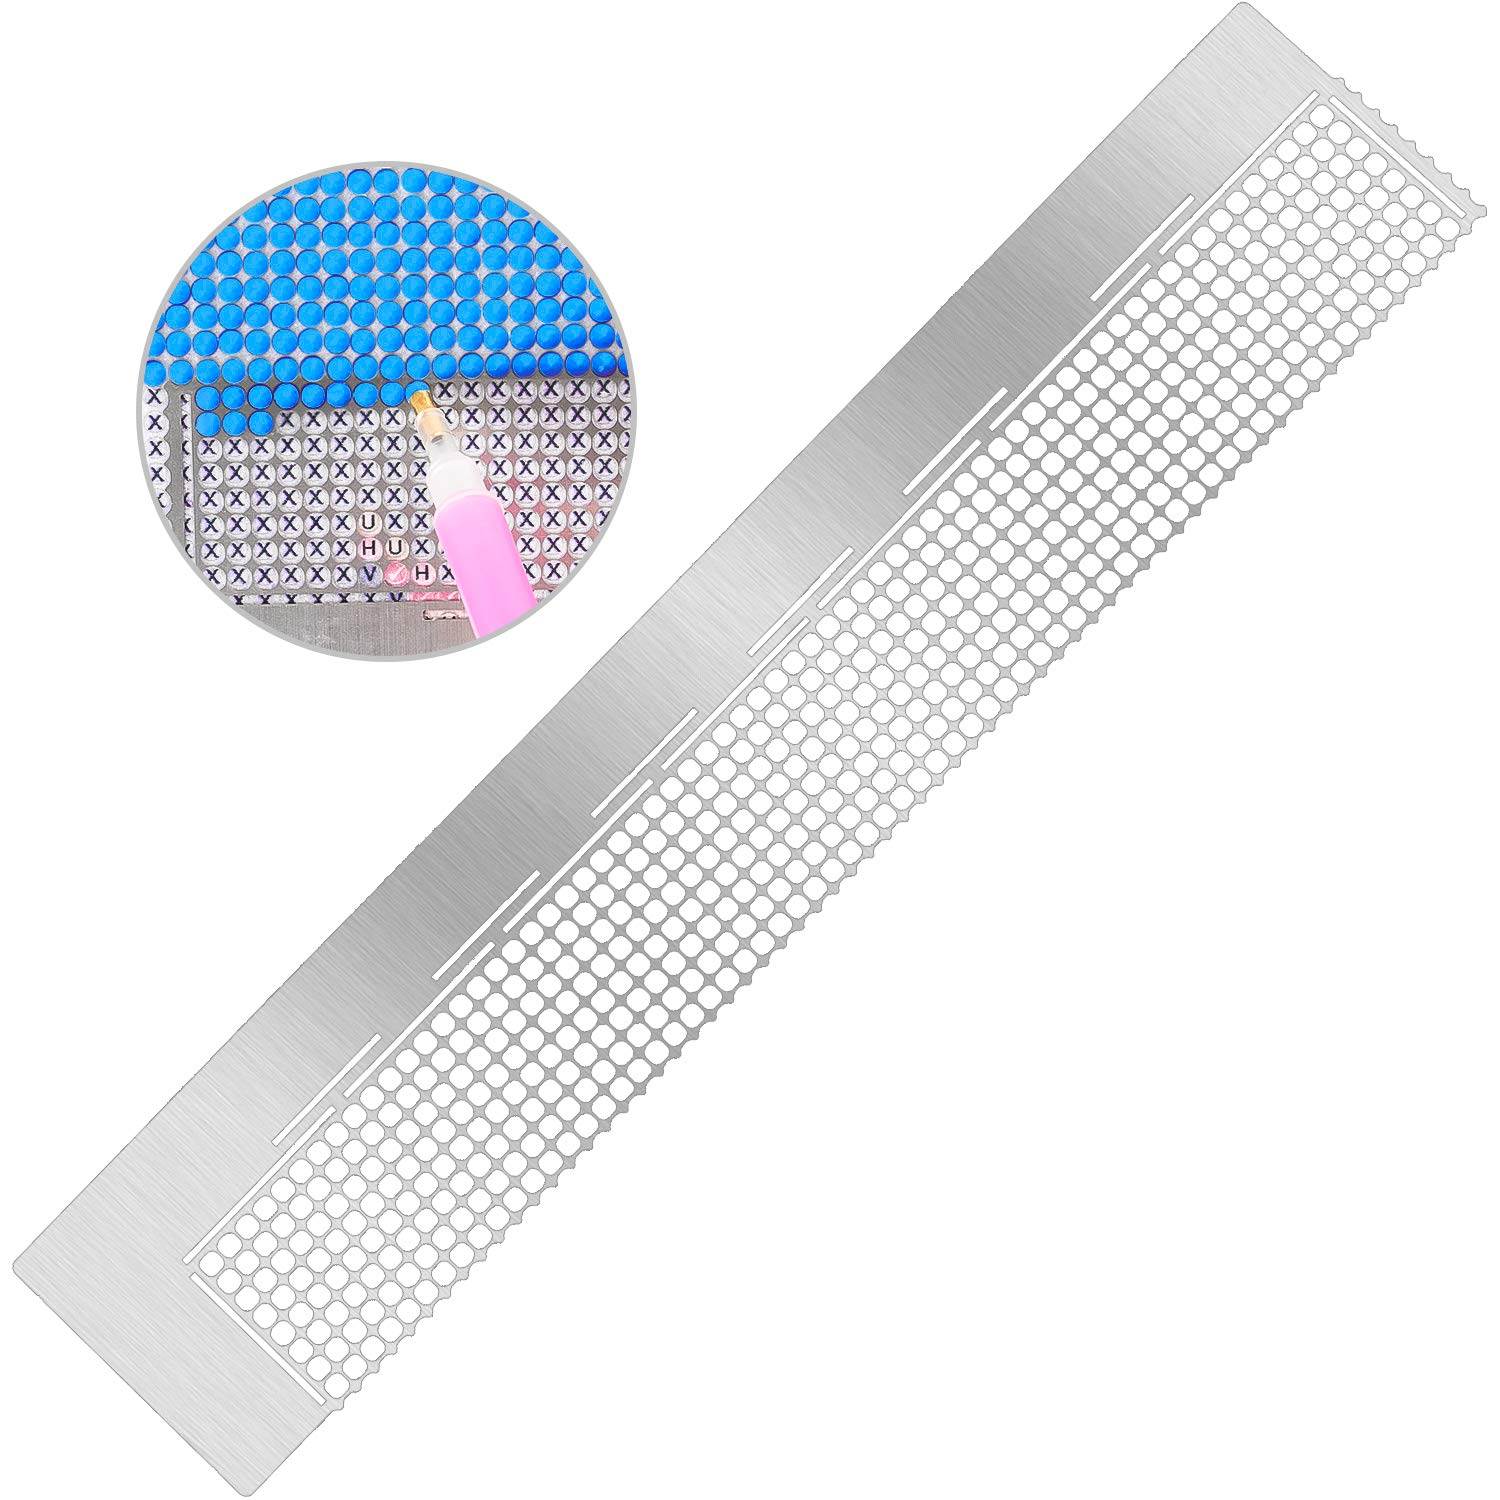 Whaline Diamond Painting Tool Stainless Steel Ruler Diamond Drawing Tool with 520 Blank Grids for Diamond Painting Round Full Drill & Partial Drill